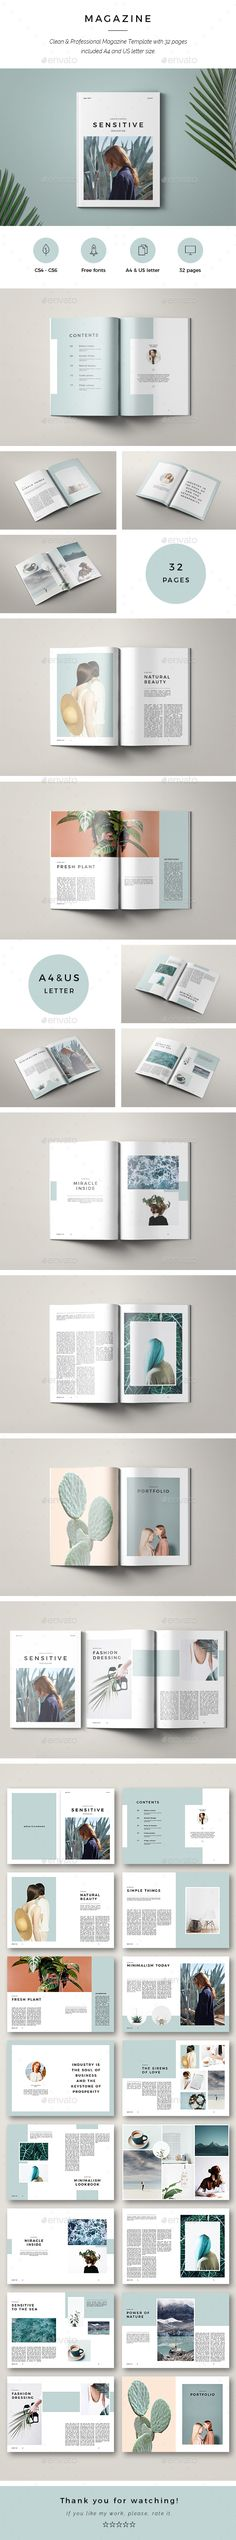 Sensitive Minimal Magazine - Magazines Print Templates